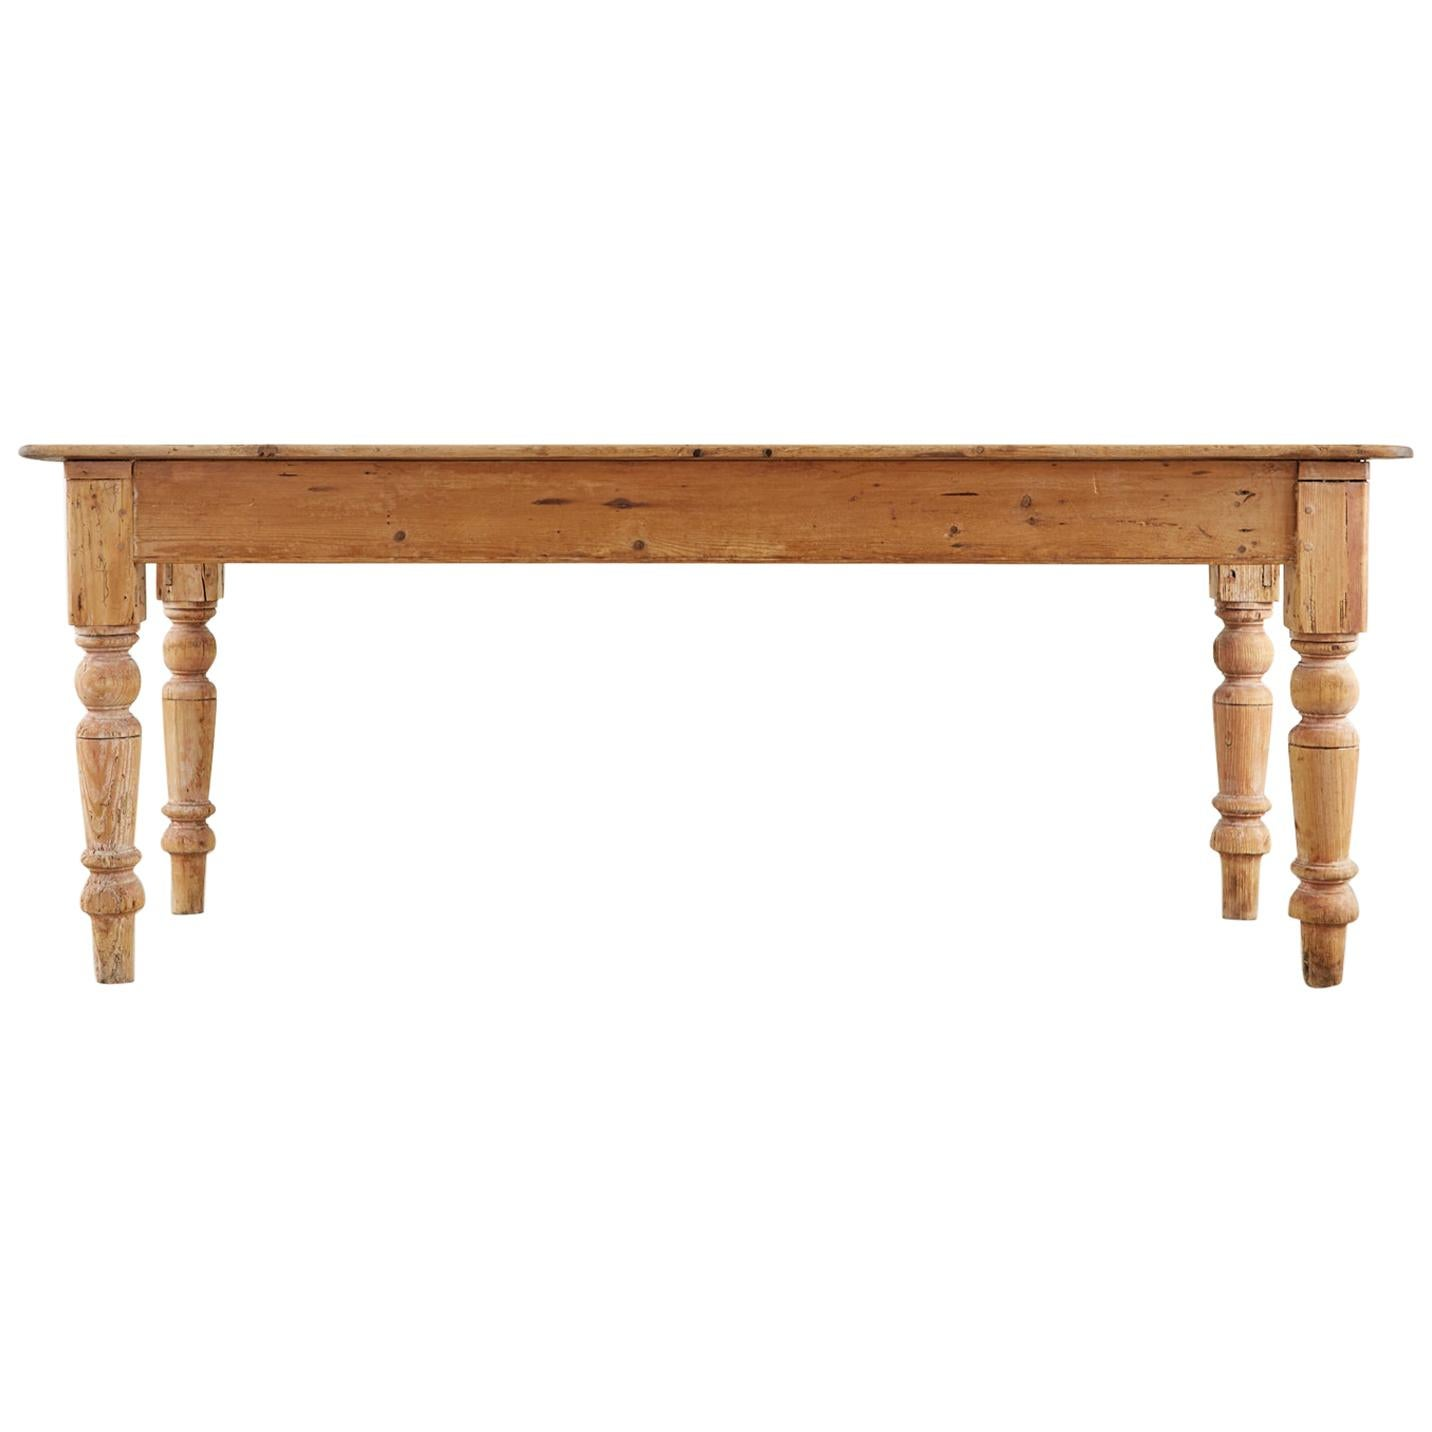 19th Century American Country Pine Farmhouse Dining Table